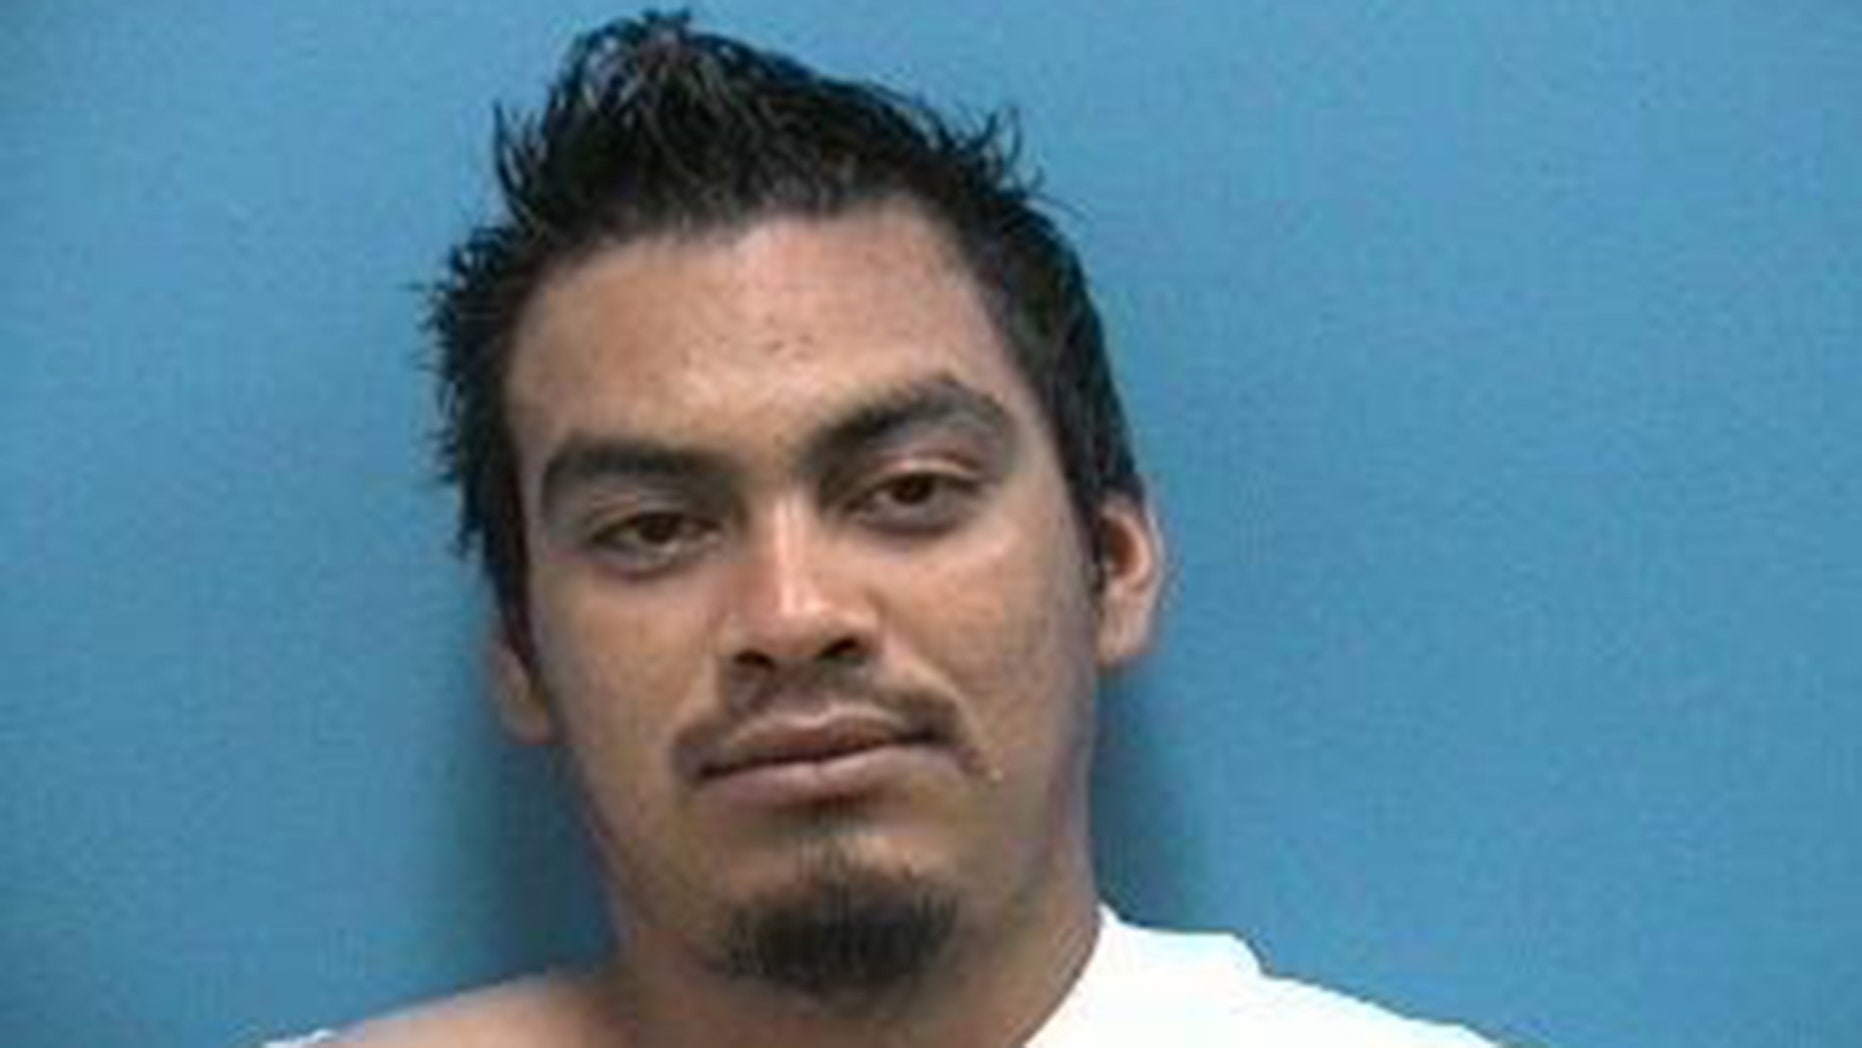 Maeli Alvarez-Aguilar was caught with a 'full rack of ribs' in his pants, police say.